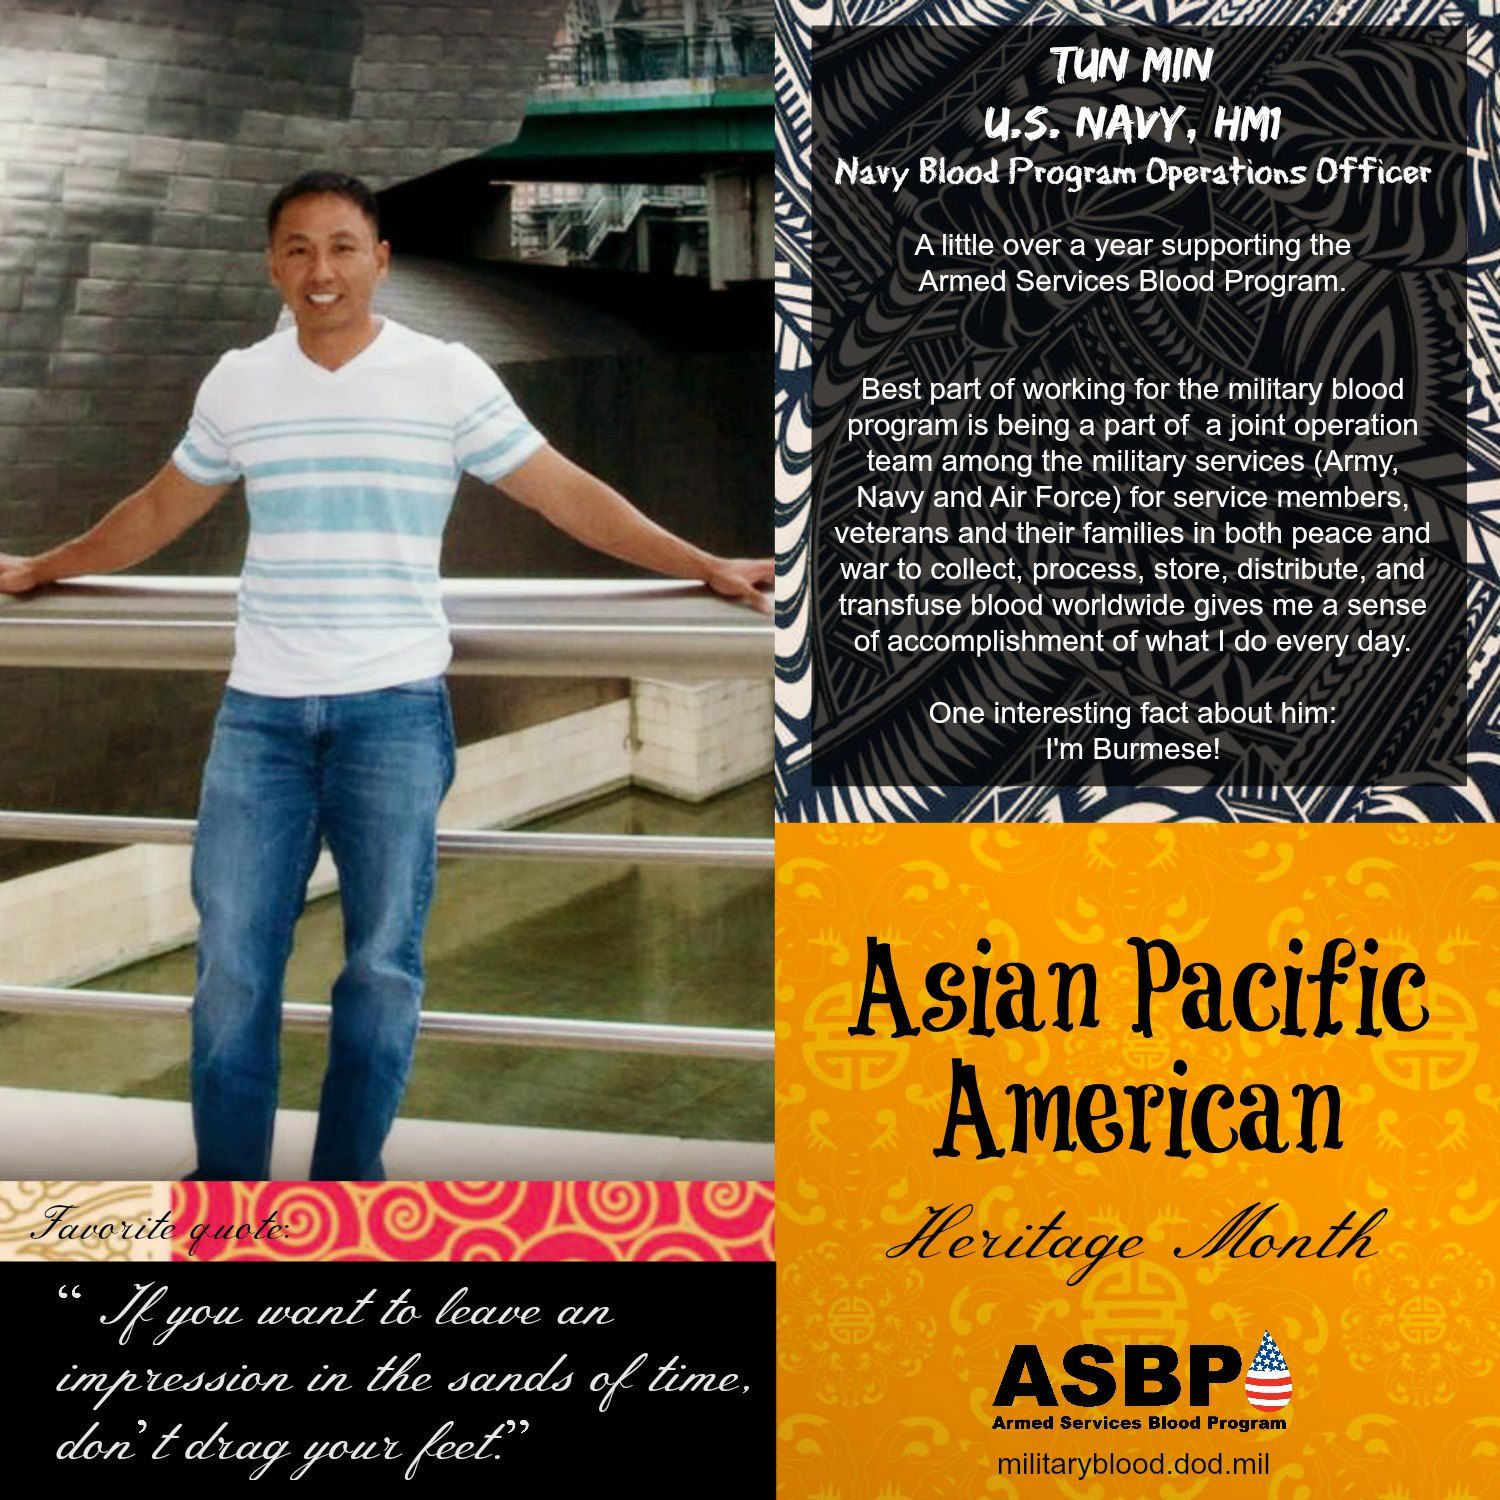 Remarkable phrase asian pacific americans in navy think, that